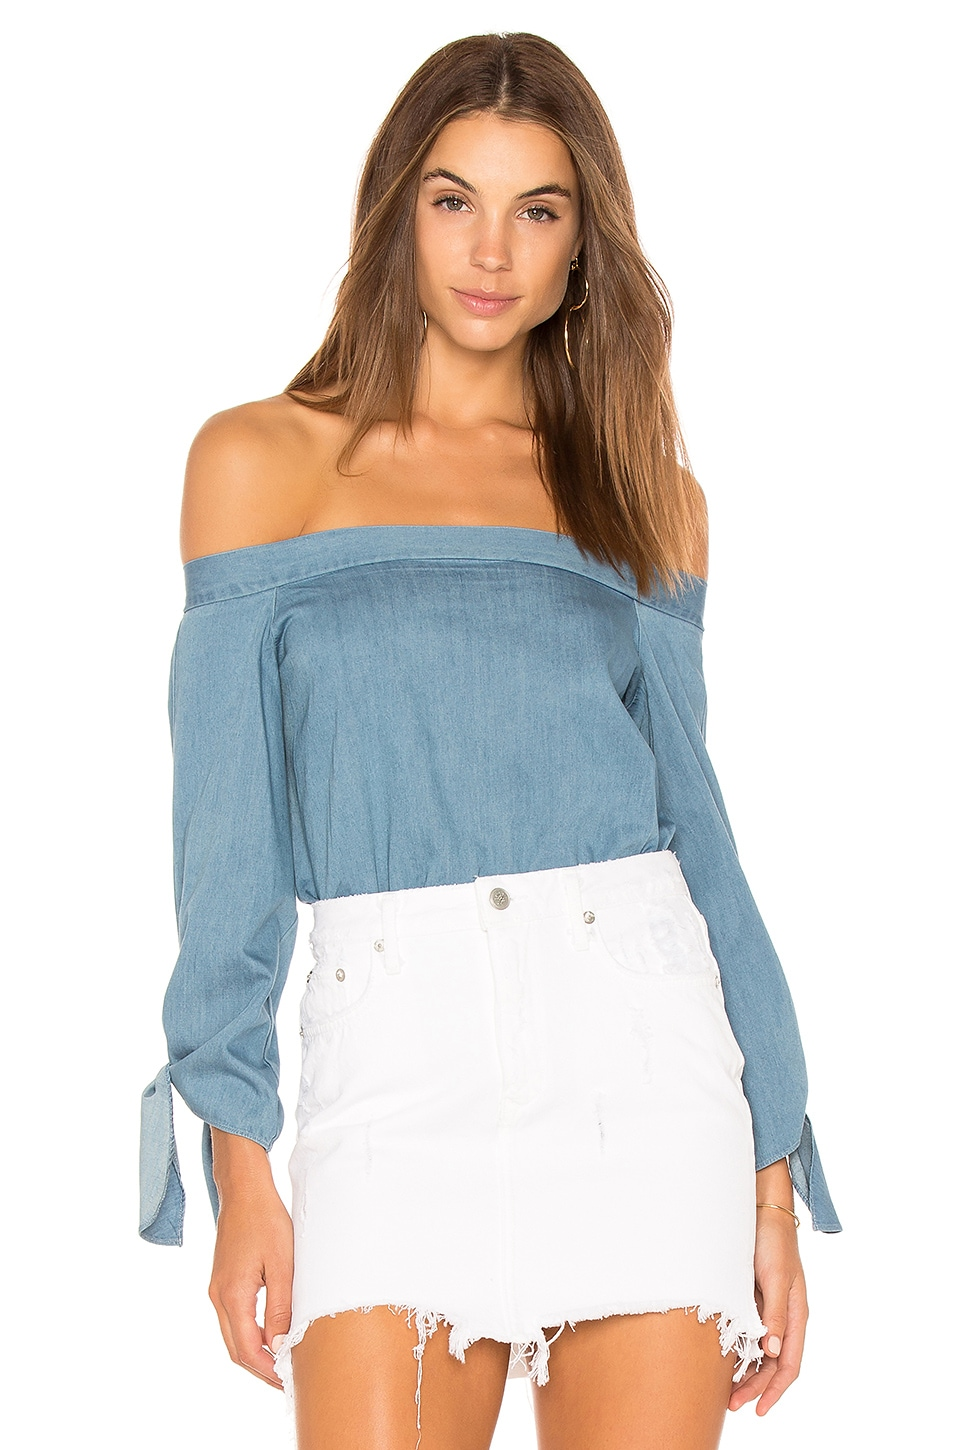 Central Park West Boulder Top in Denim